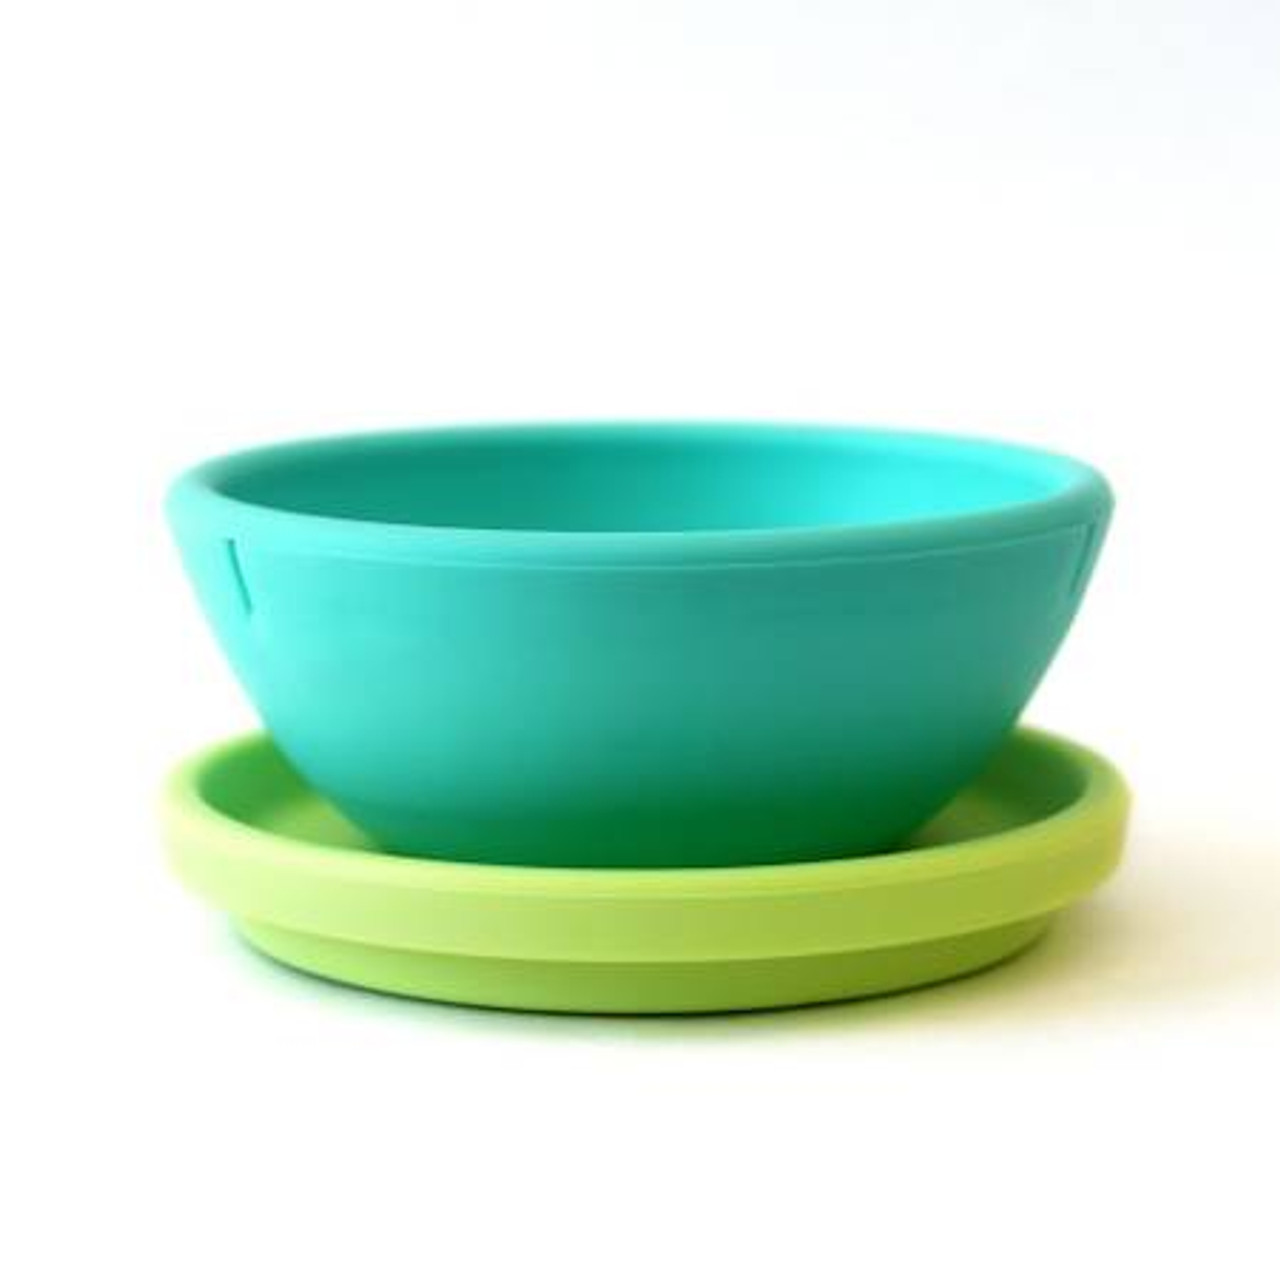 Silicone Bowl with Plate Lid set by Gosili